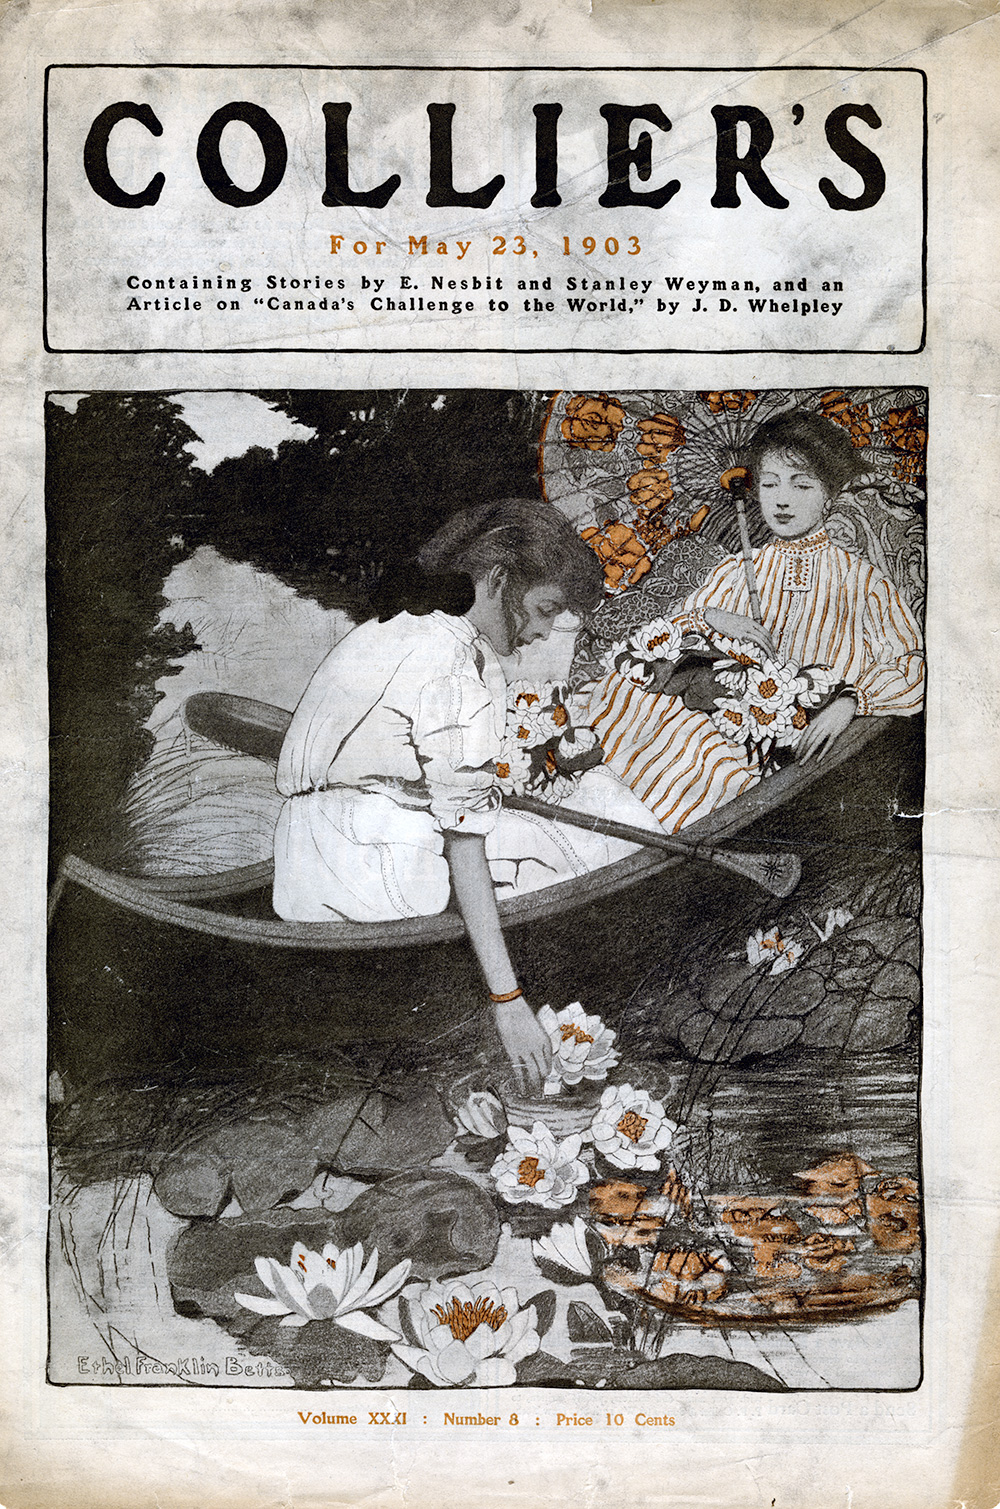 Ethel Franklin Betts, Cover Illustration for Collier's Magazine. Volume XXXI, Number 8. May 23, 1903.